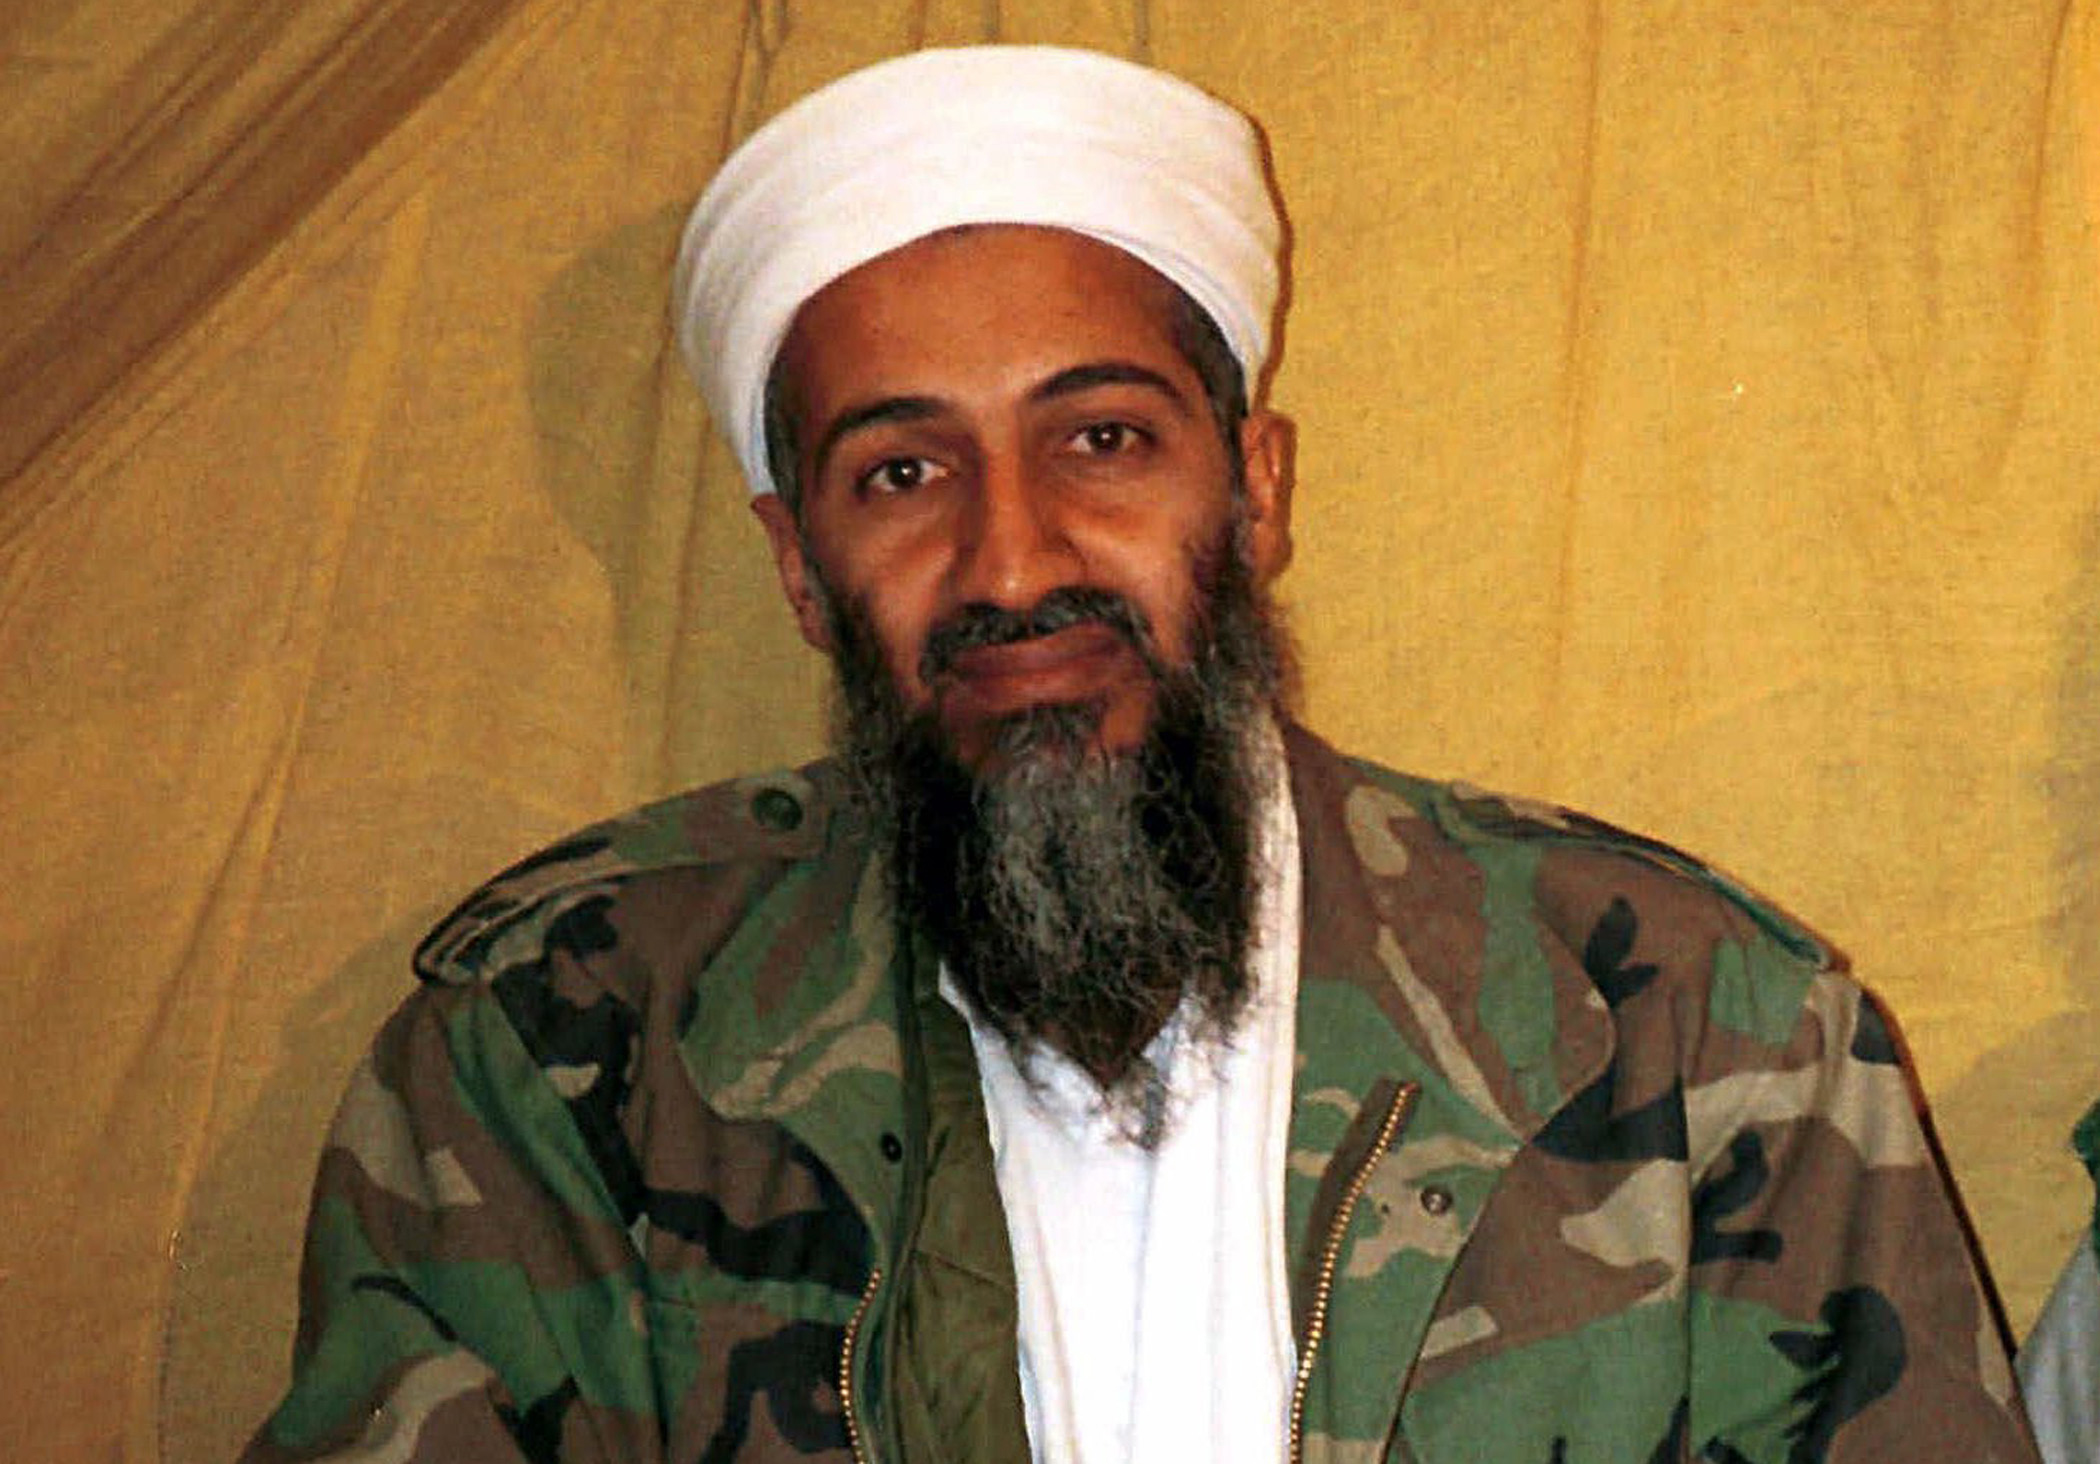 Osama bin Laden Claimed $29 Million in Personal Wealth, Worried About Chip in Wife's Tooth